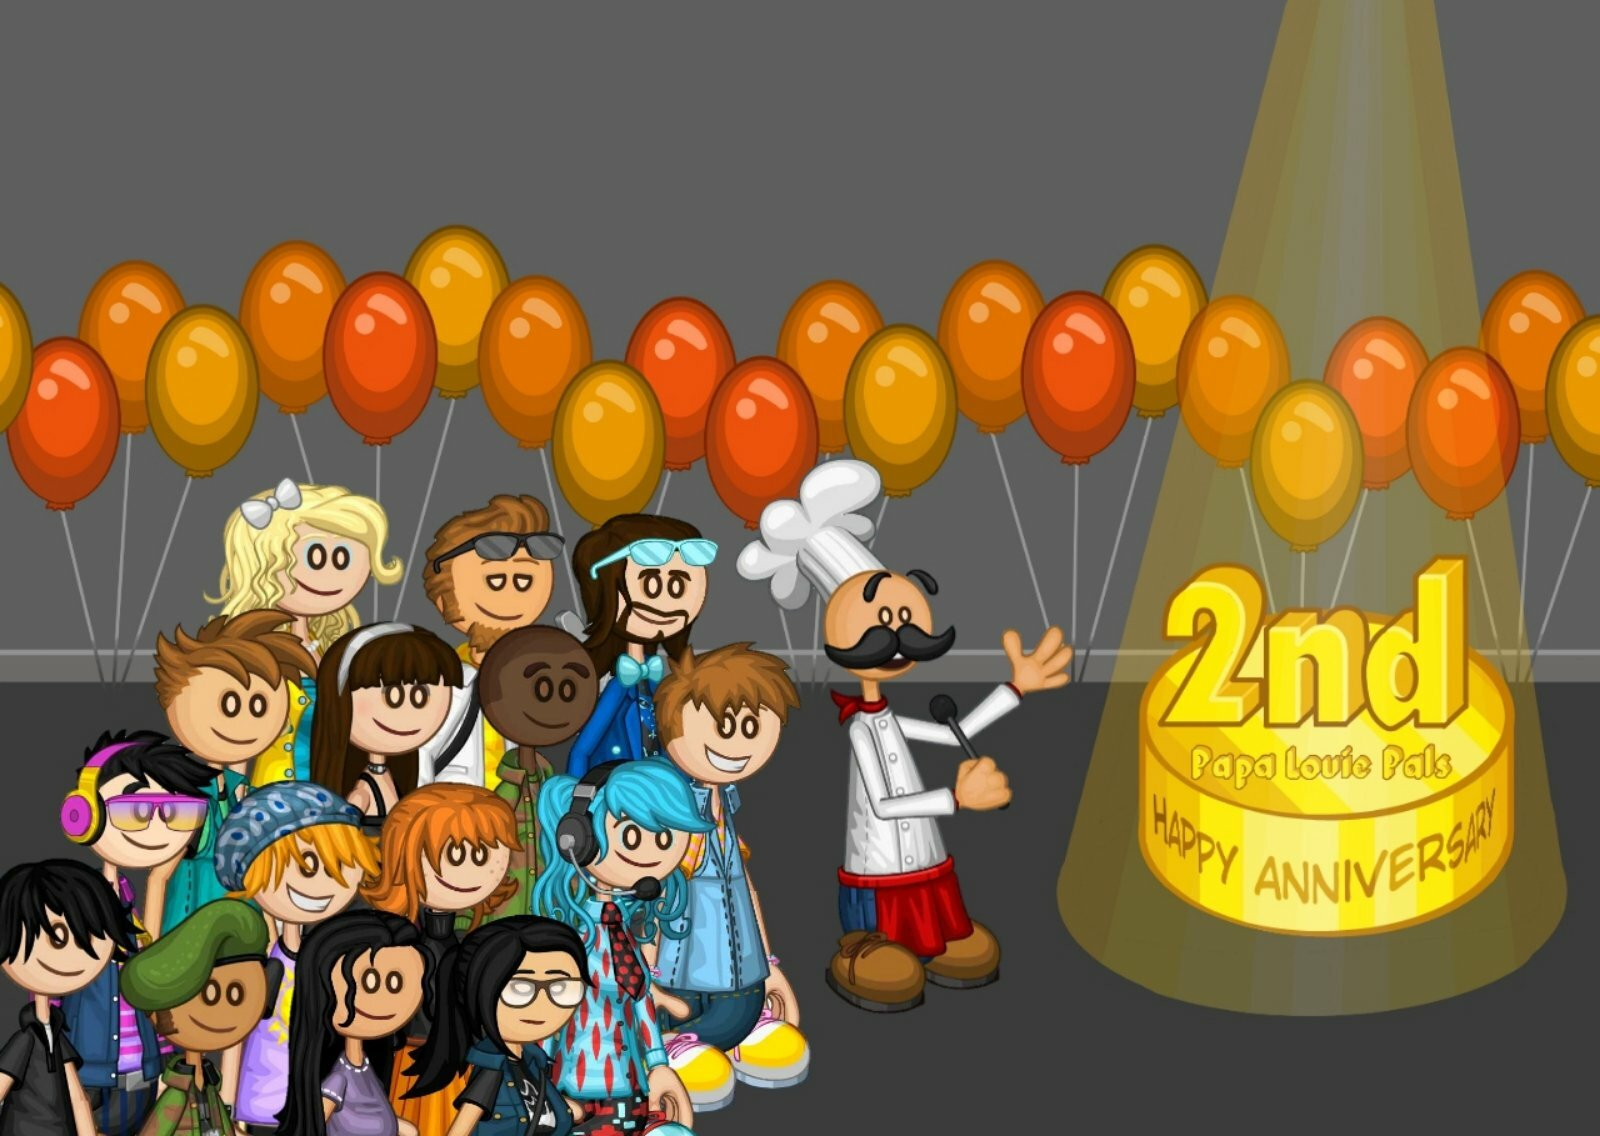 Happy 2nd Anniversary to Papa Louie Pals